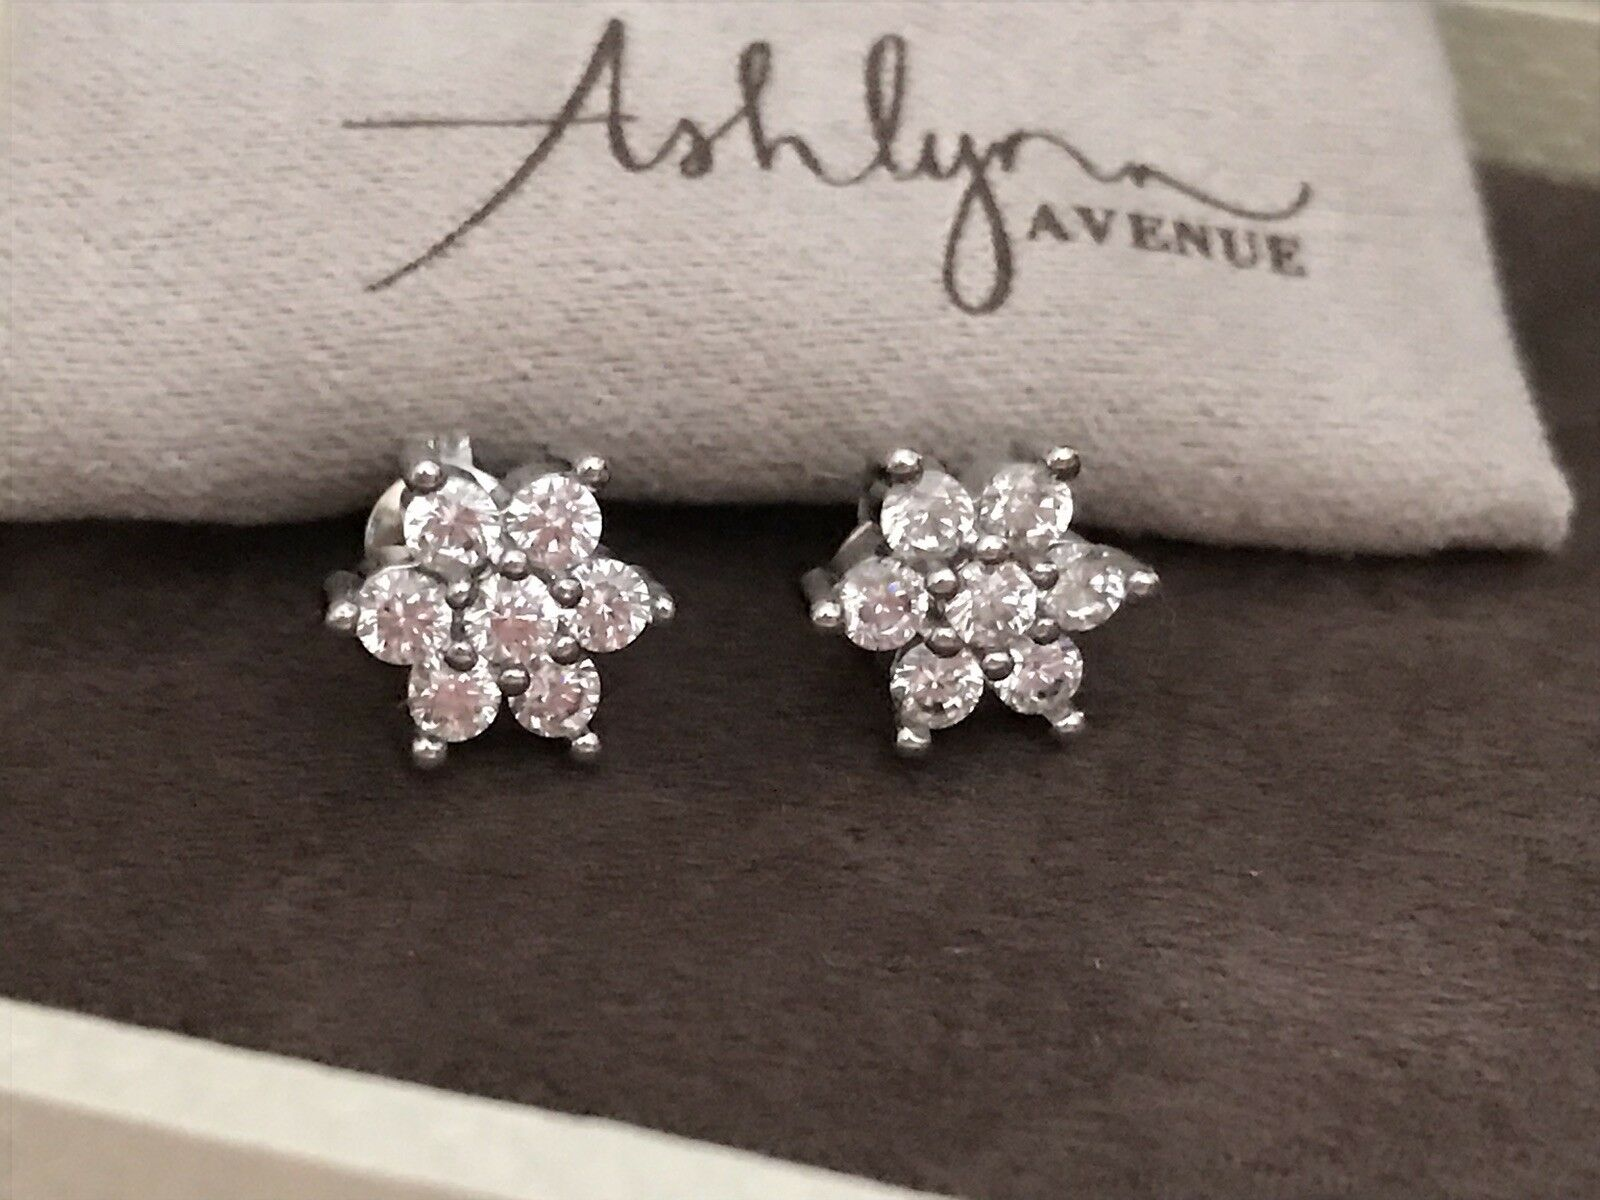 Ashley Avenue Summer Blossom 18k White gold Plated earrings With CZ Stones